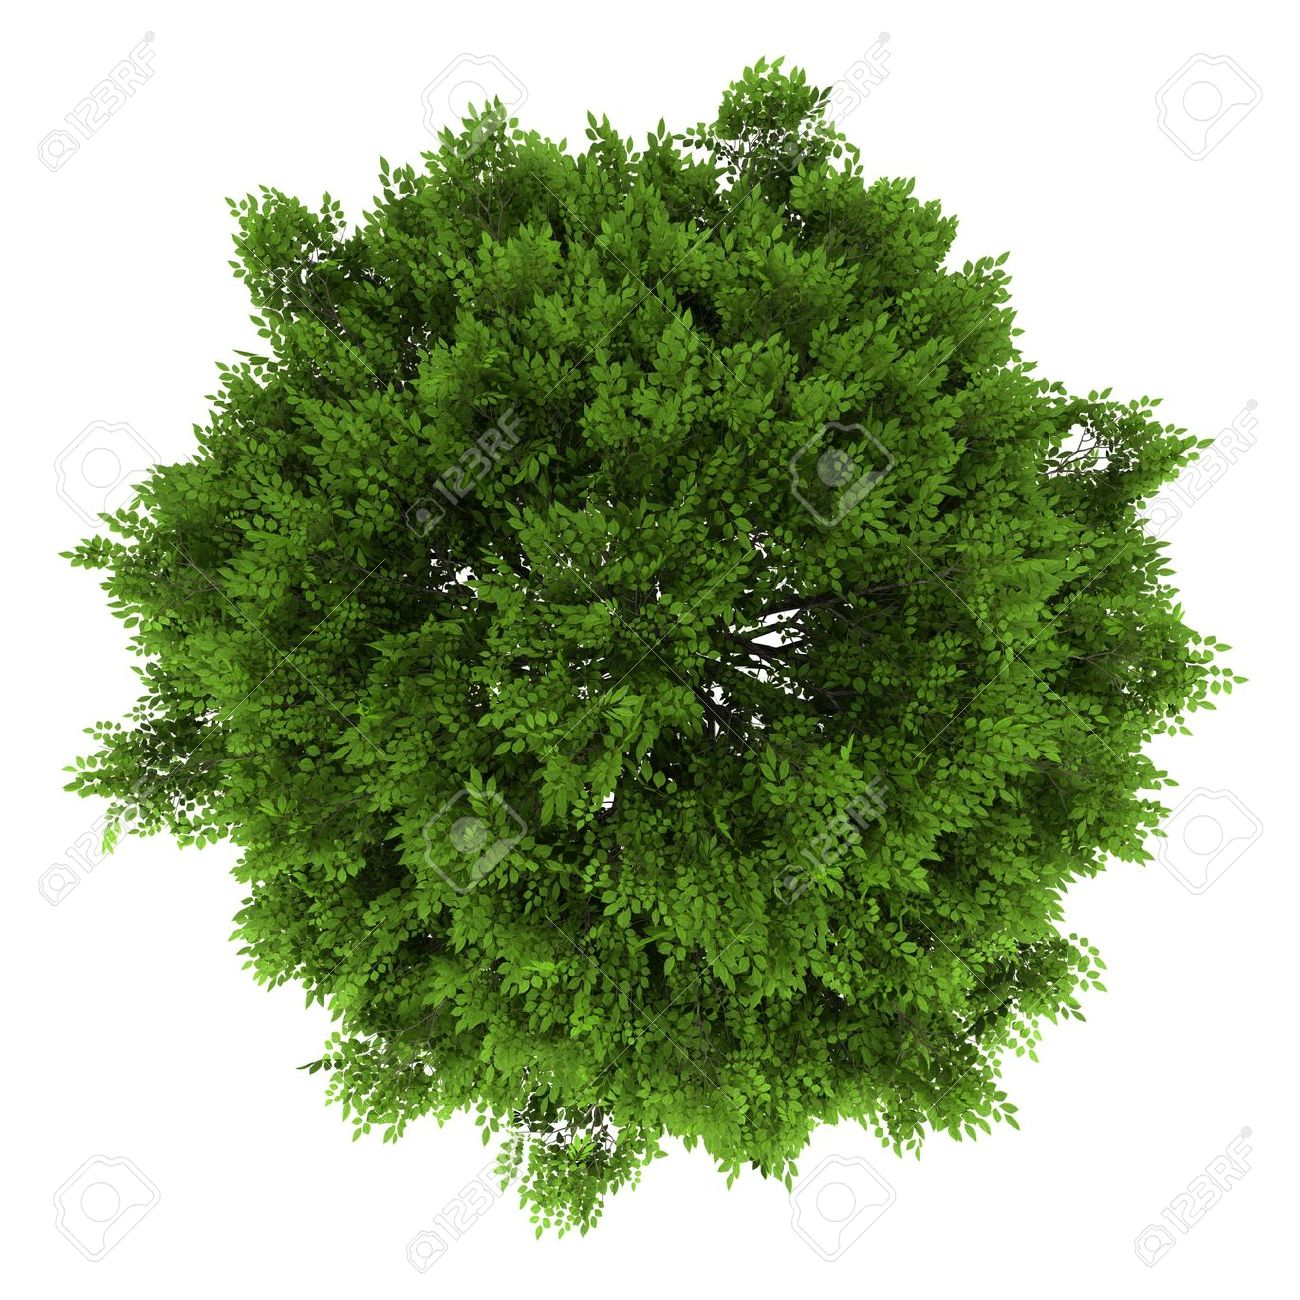 Top View Of European Ash Tree Isolated On White Background Stock Photo -  14890712 - Tree PNG Top View